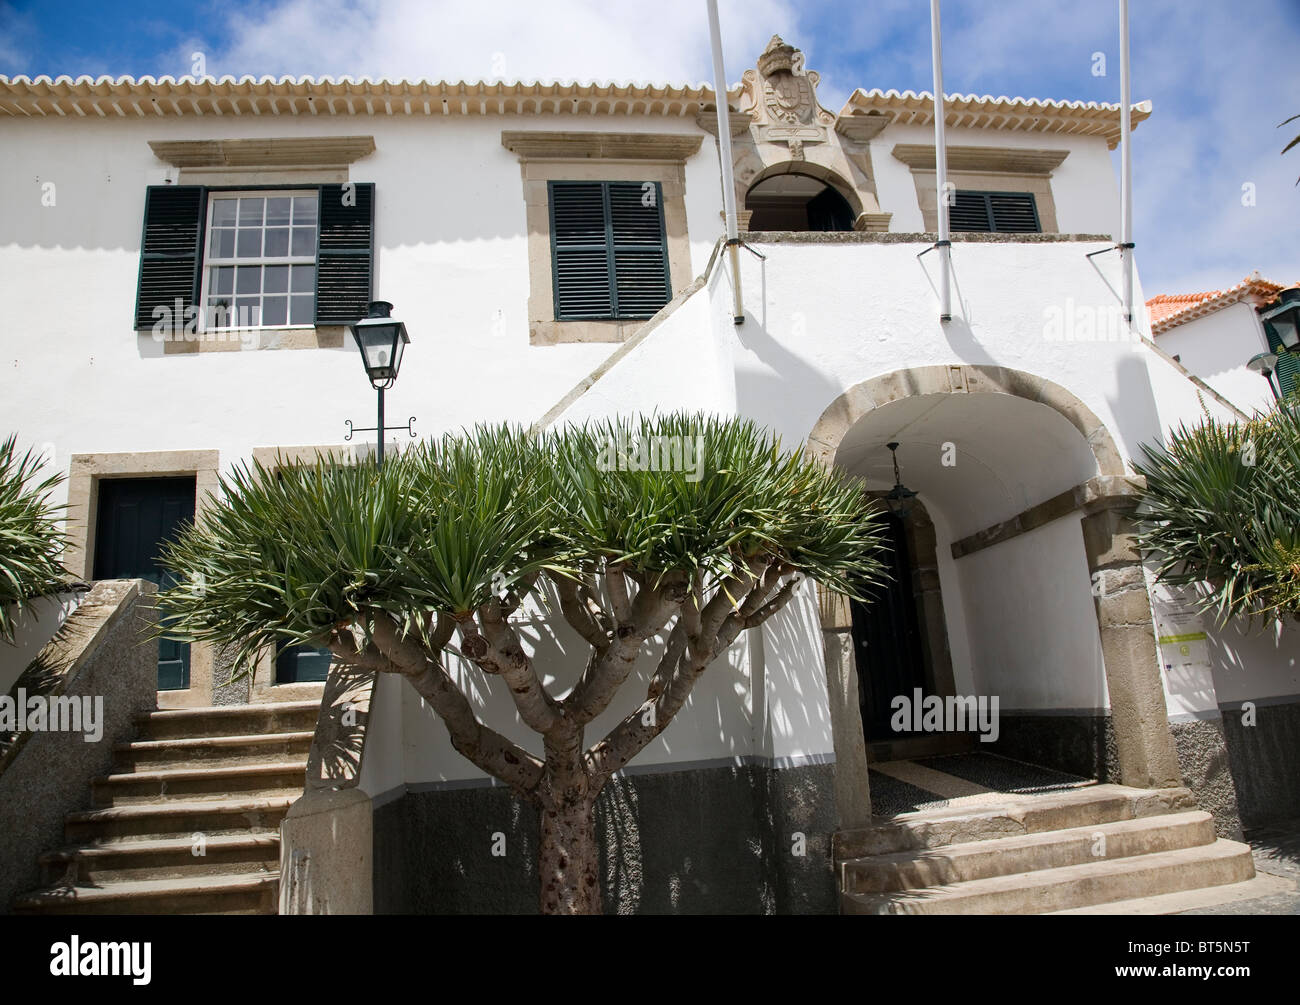 Building in Vila Baleira, town in Porto Santo - Stock Image